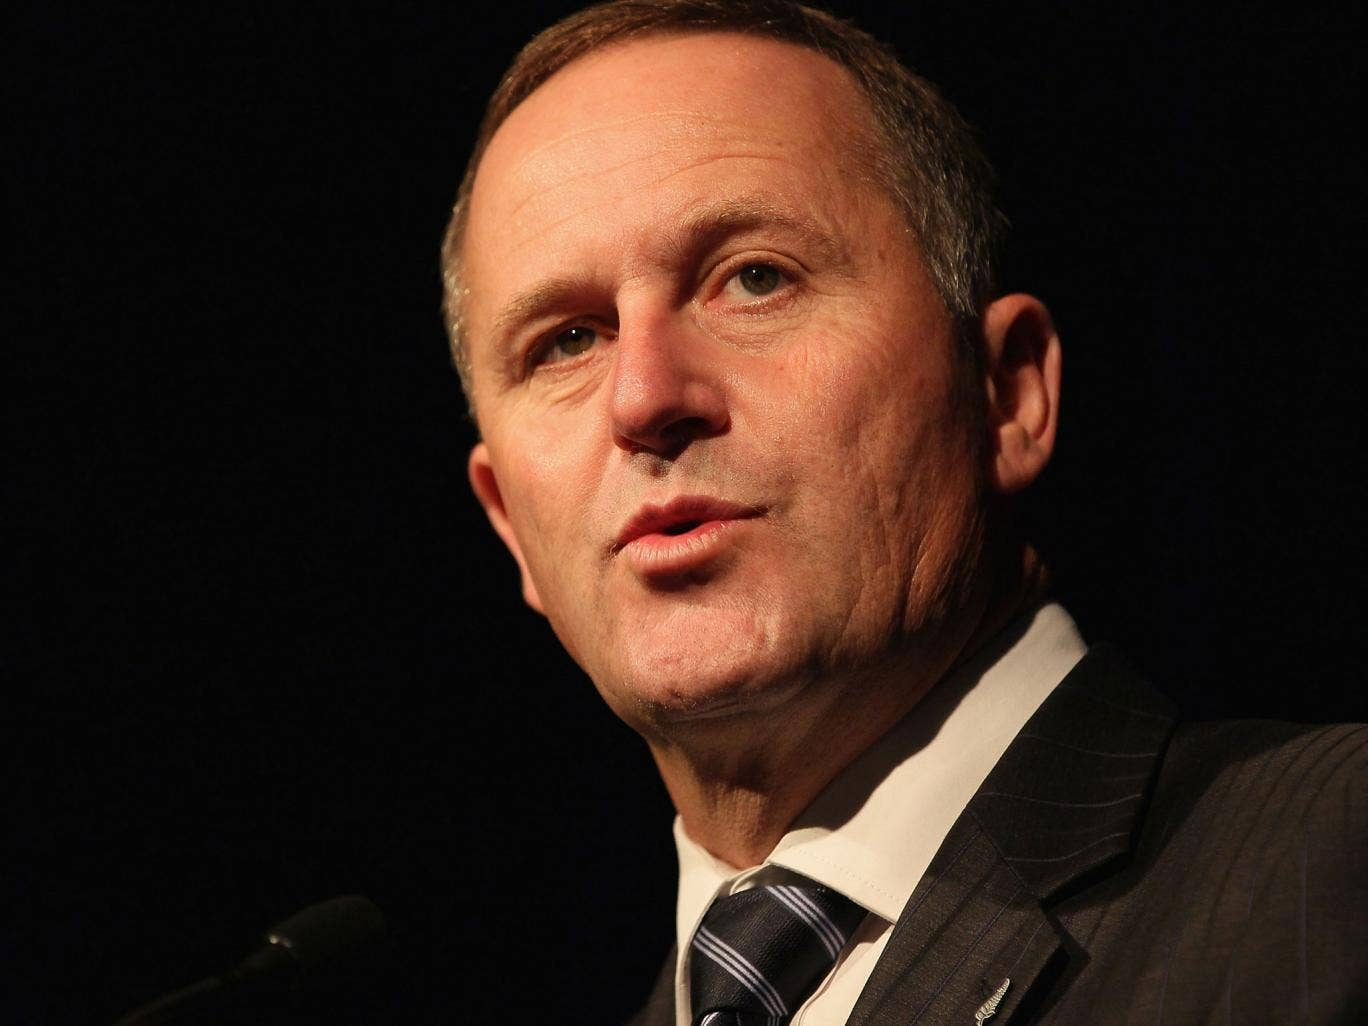 """John Key, or - as he is also known - """"unidentified guest"""""""